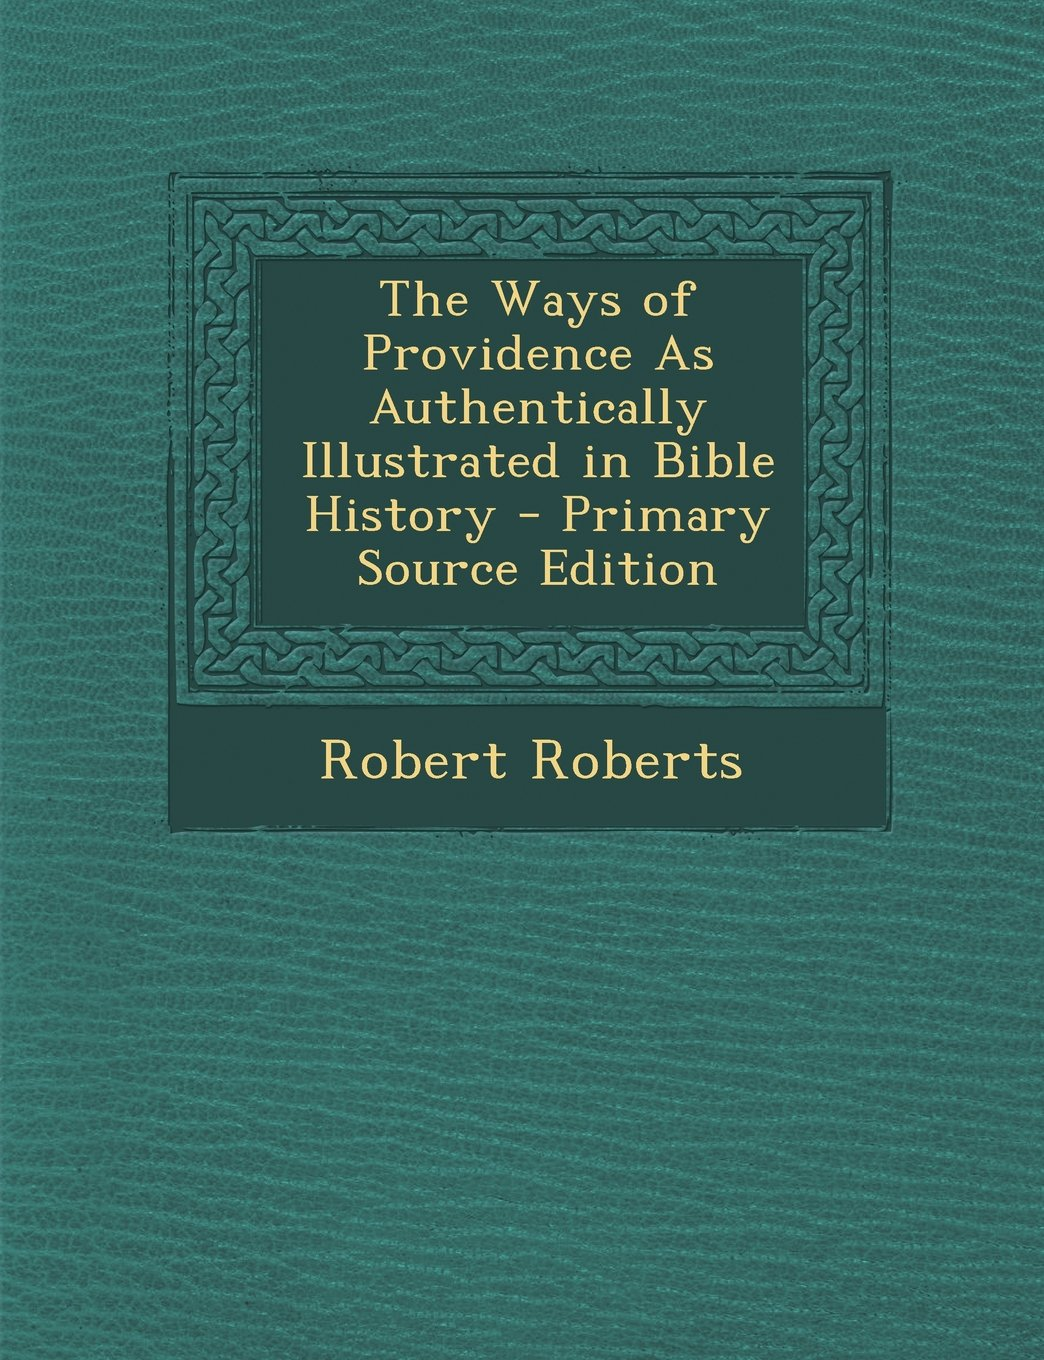 The Ways of Providence as Authentically Illustrated in Bible History - Primary Source Edition pdf